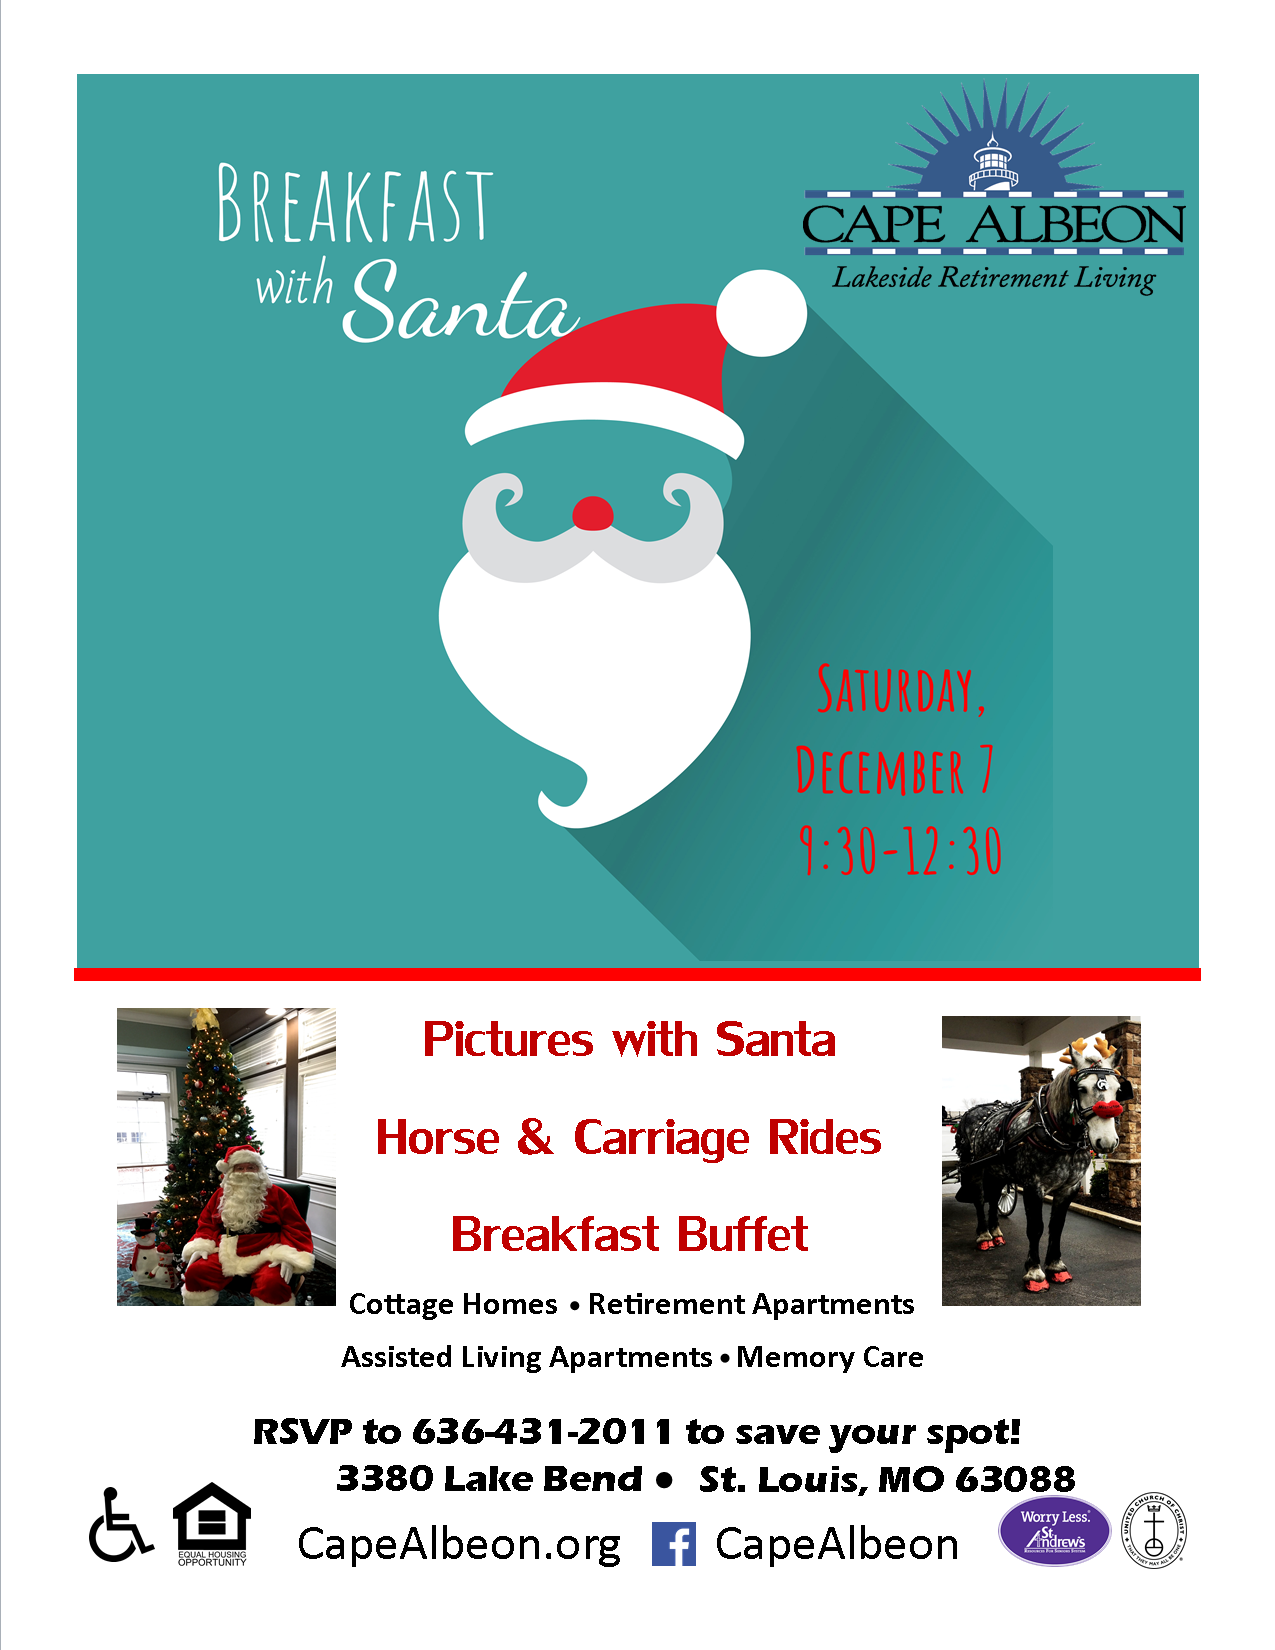 Cape Albeon hosts Breakfast with Santa